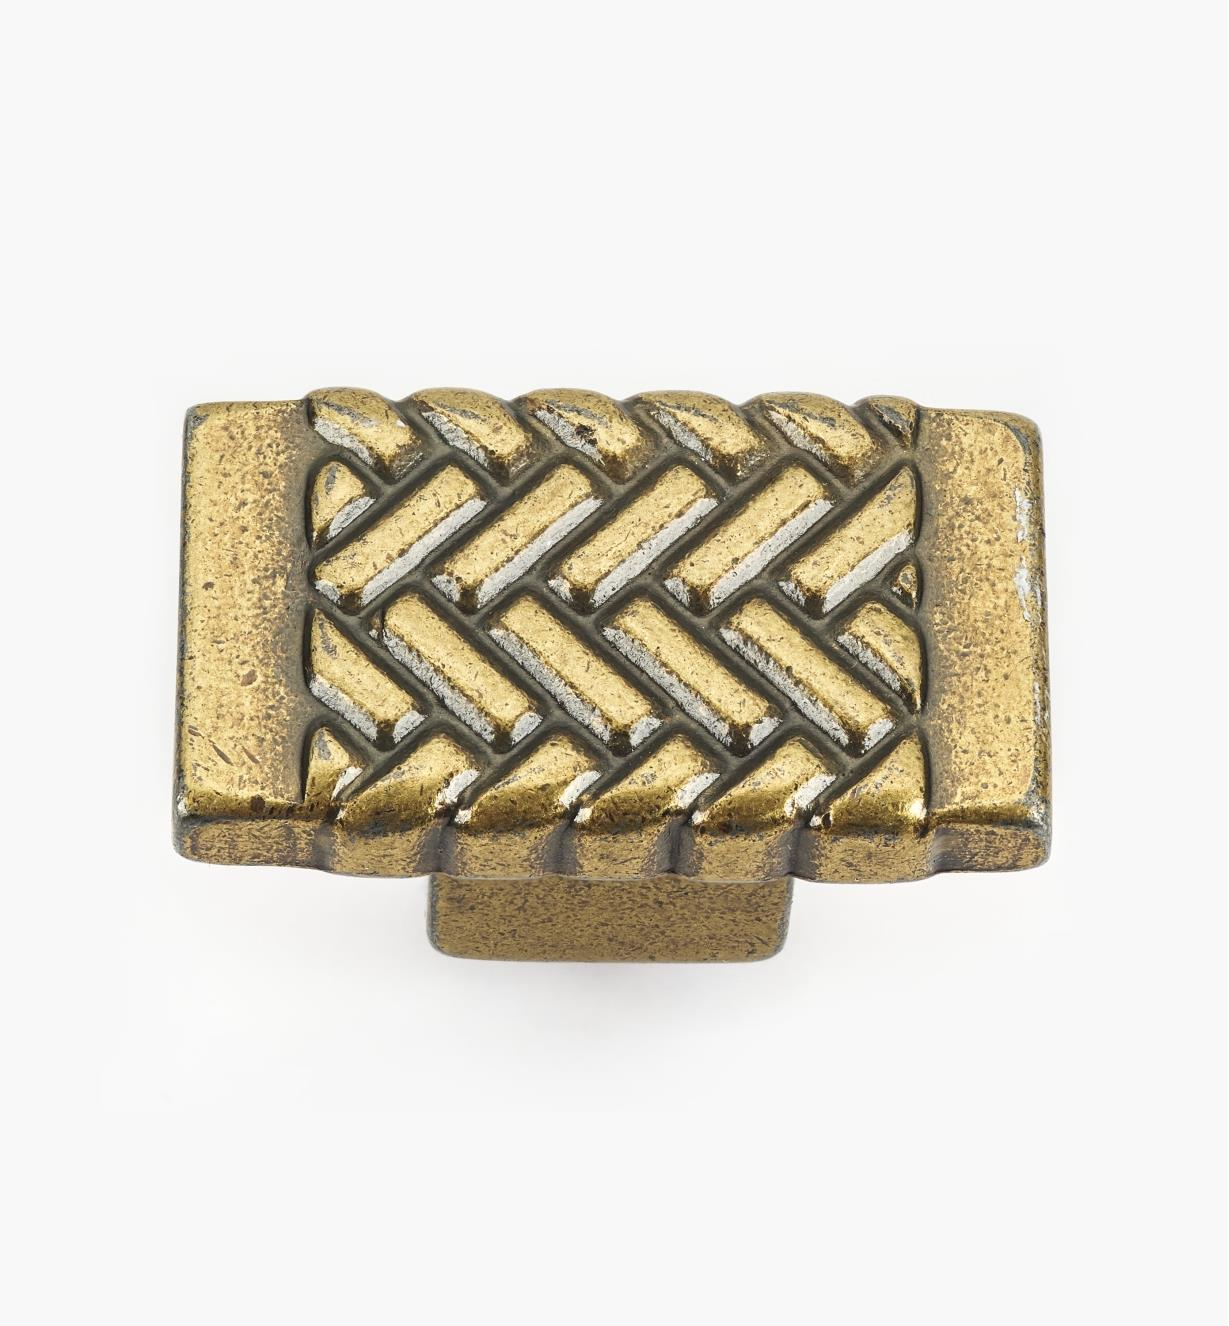 01G1941 - Antique Brass Herringbone Knob